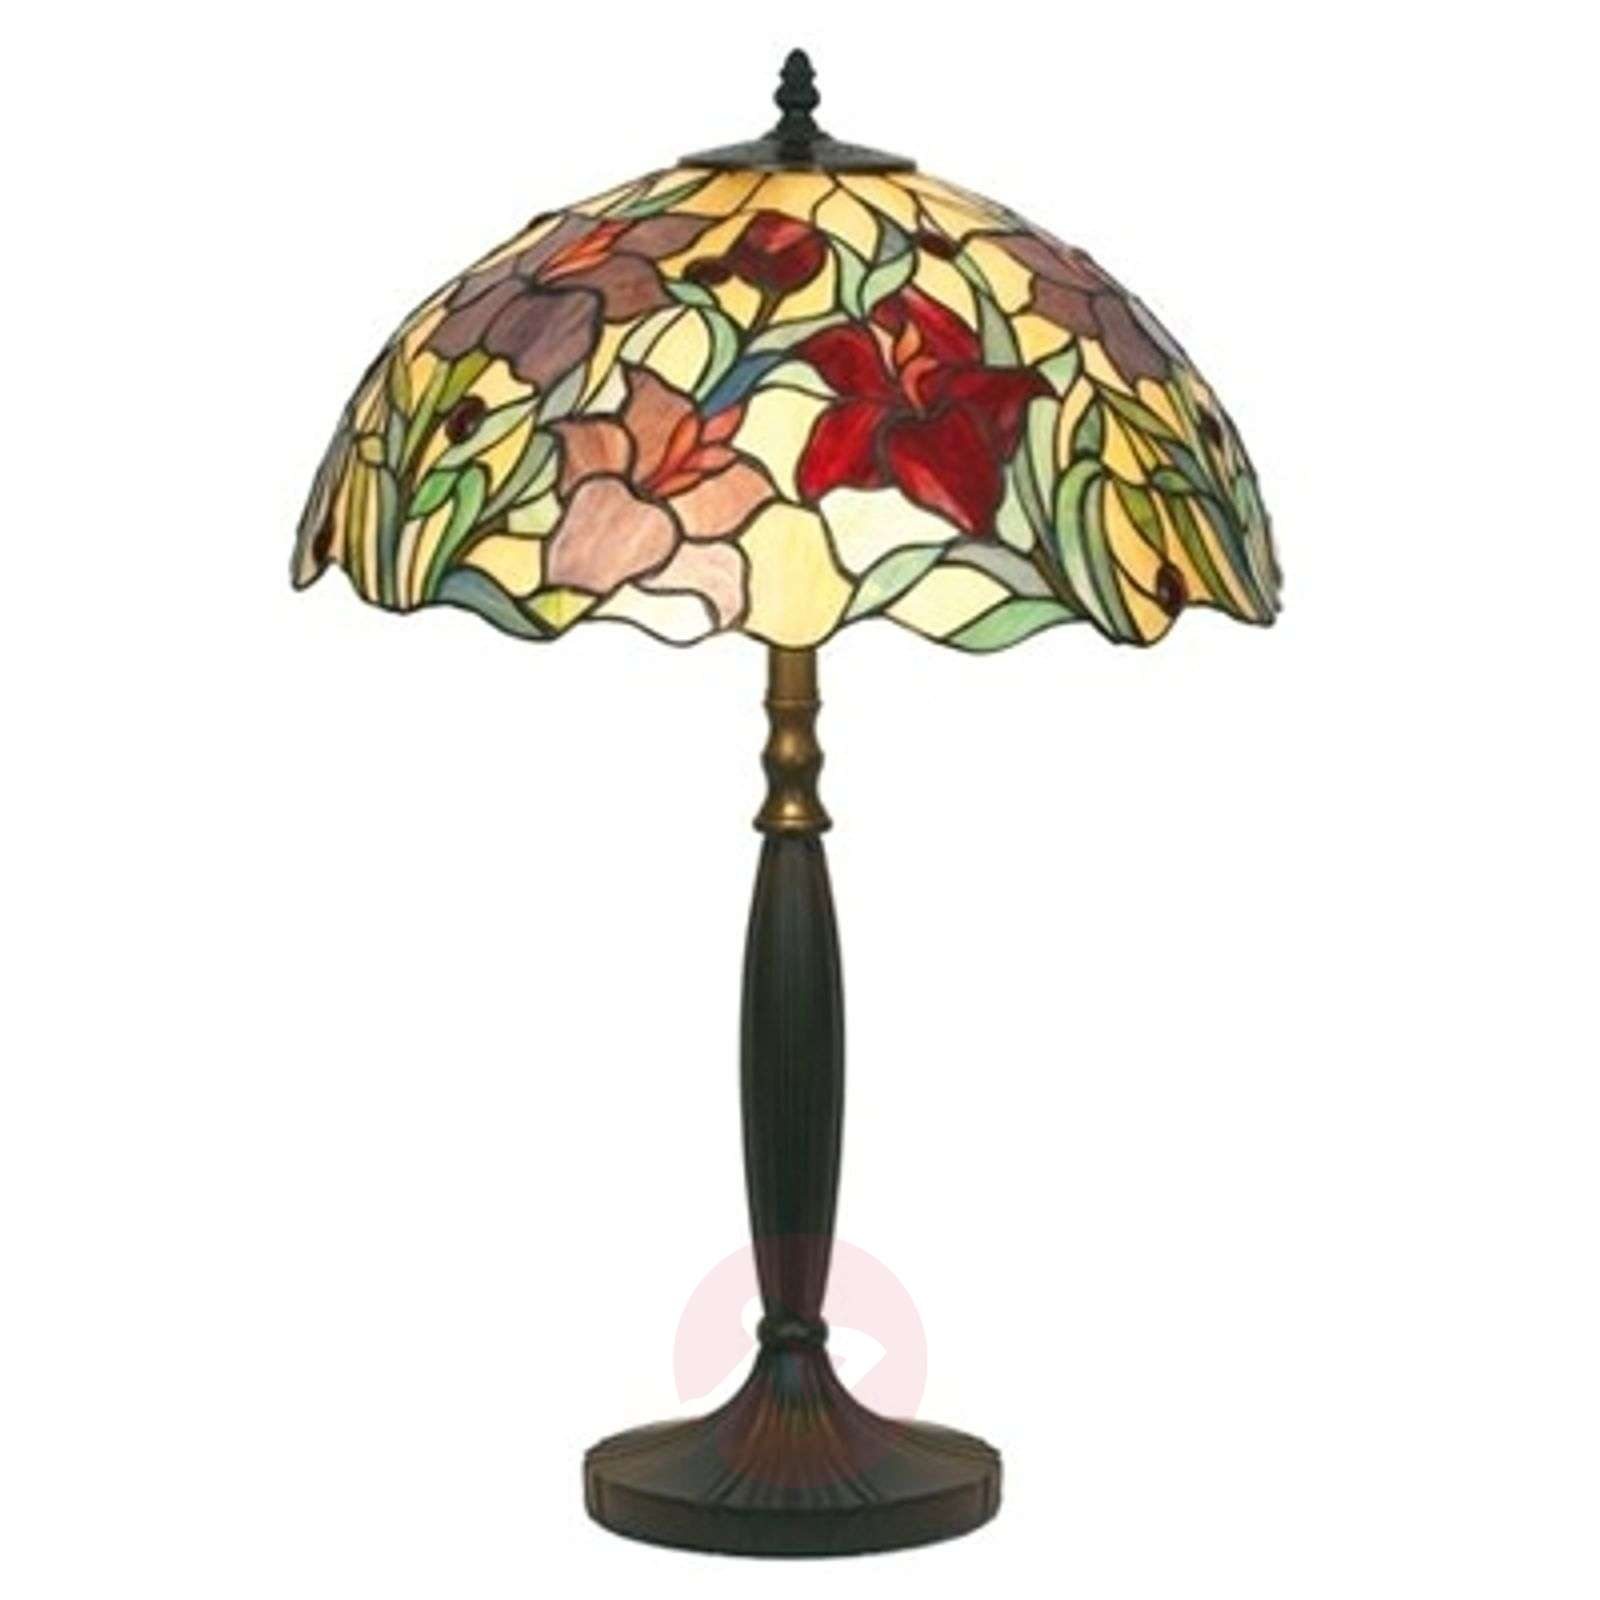 Floral table lamp ATHINA, handmade, 62 cm-1032138-01